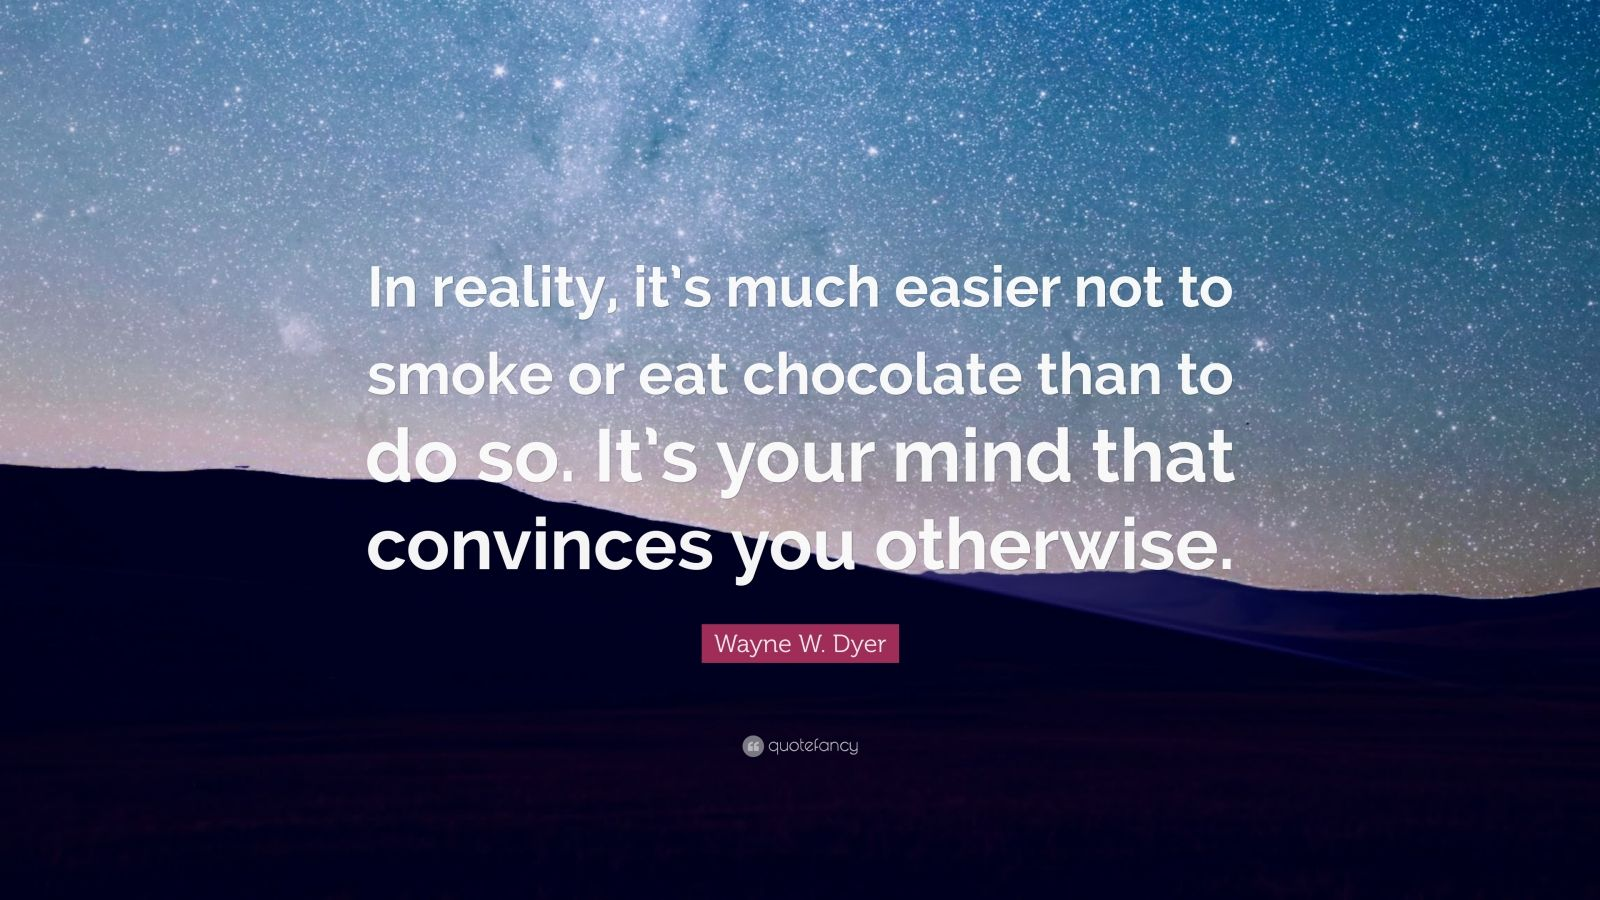 """Wayne W. Dyer Quote: """"In reality, it's much easier not to smoke or eat chocolate than to do so. It's your mind that convinces you otherwise."""""""